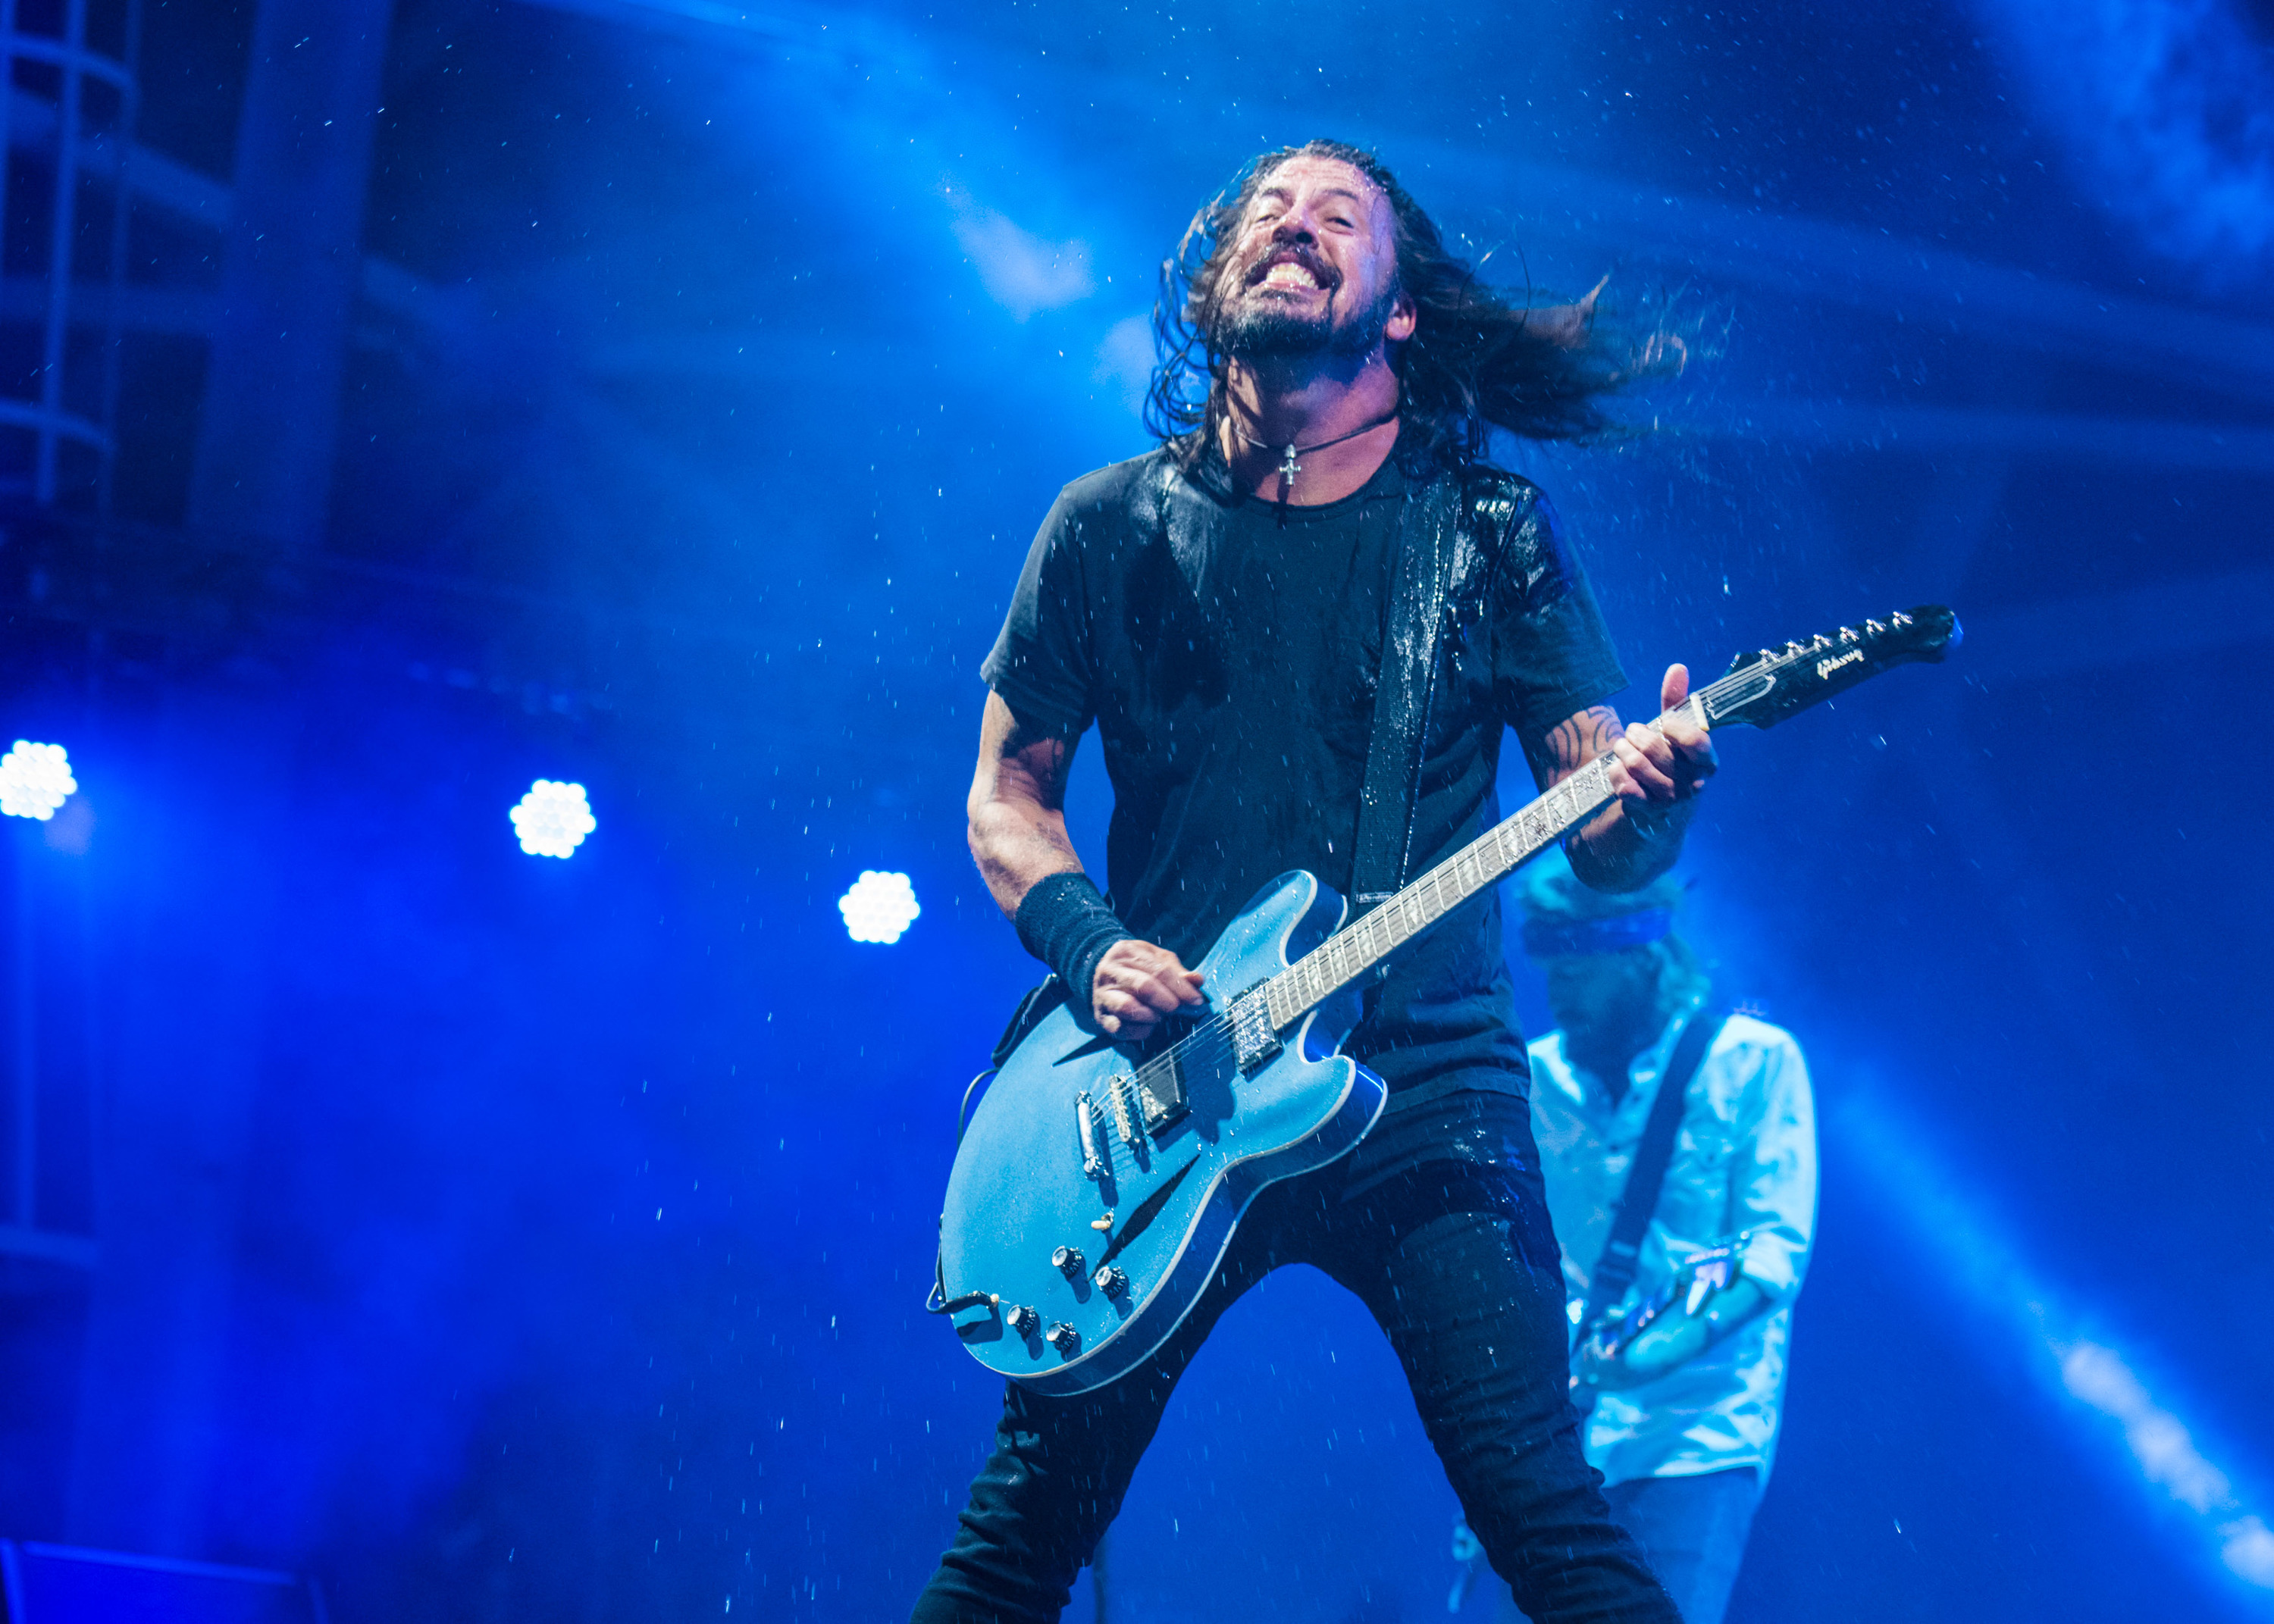 A talented fan stole the show at the Foo Fighters concert